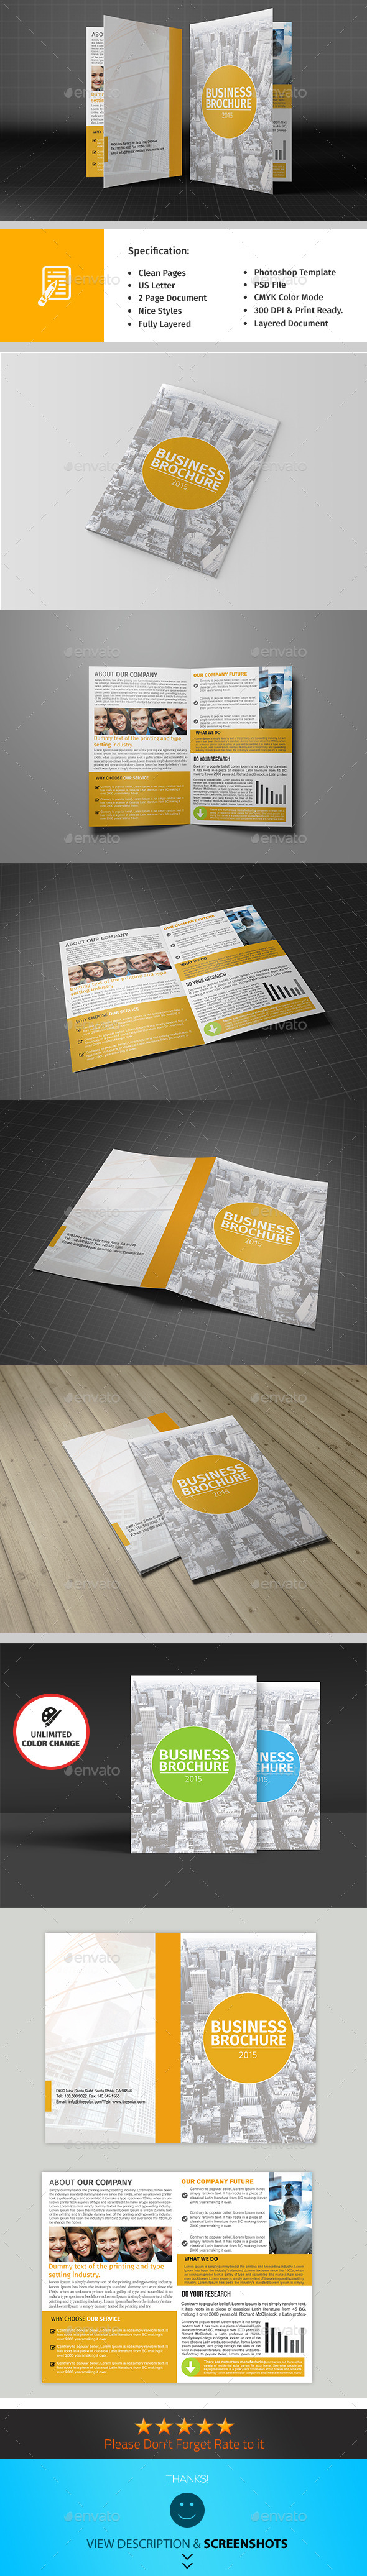 GraphicRiver Bifold Corporate Brochure Template Vol03 9699651